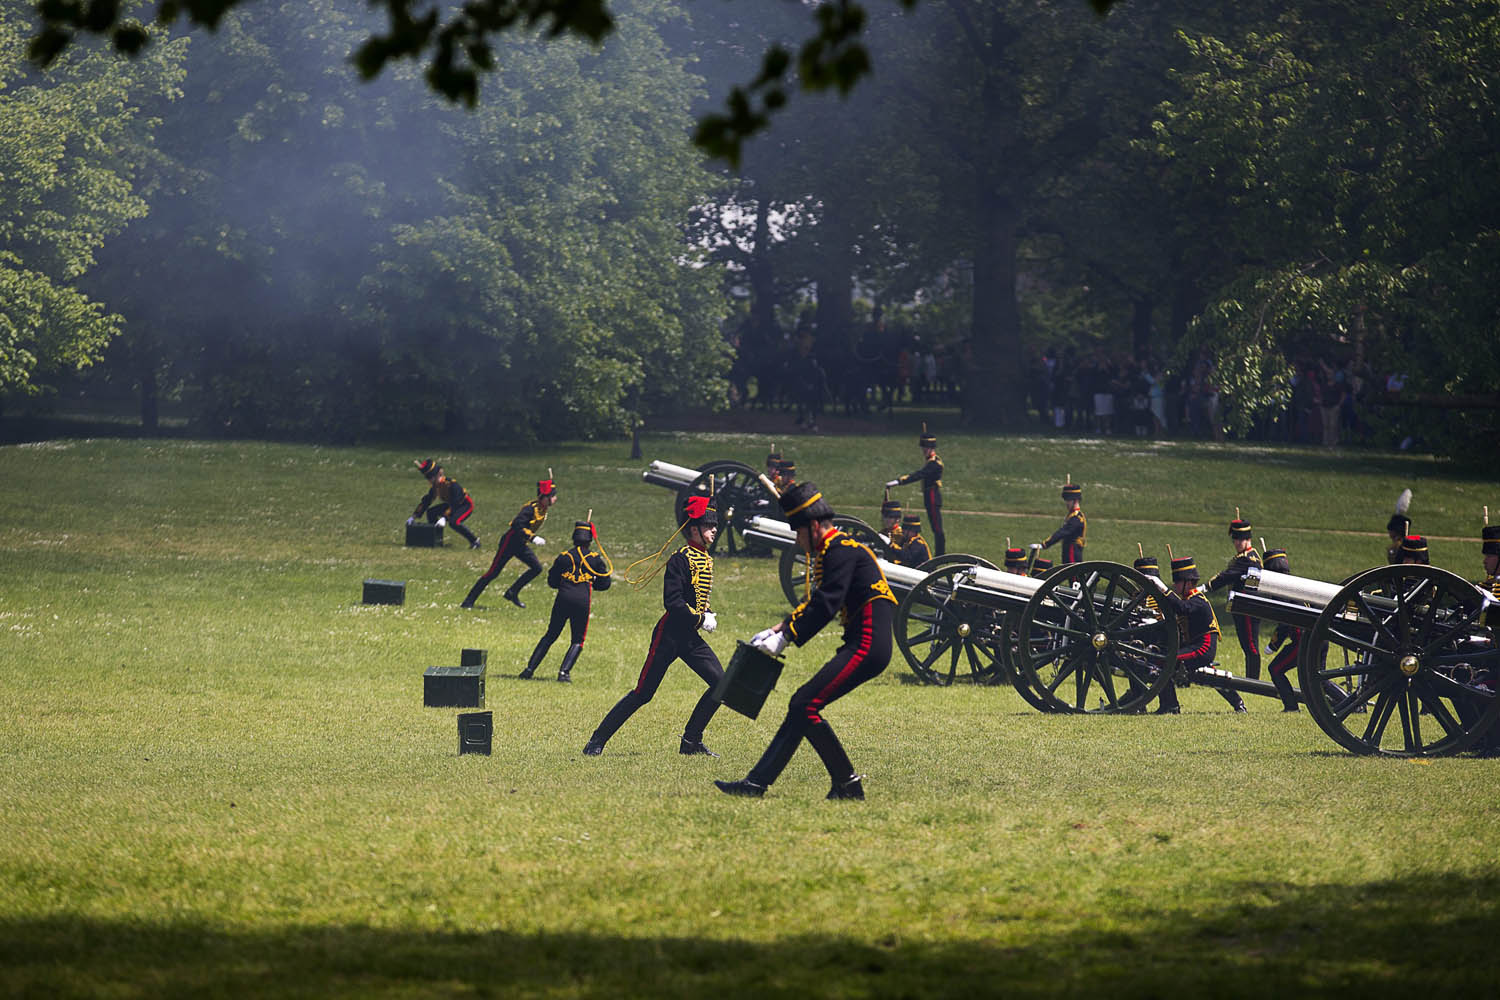 June 3, 2013. Soldiers from The King's Troop seen during a Royal Gun Salute at Green Park to commemorate the coronation of Britain's Queen Elizabeth II in London.